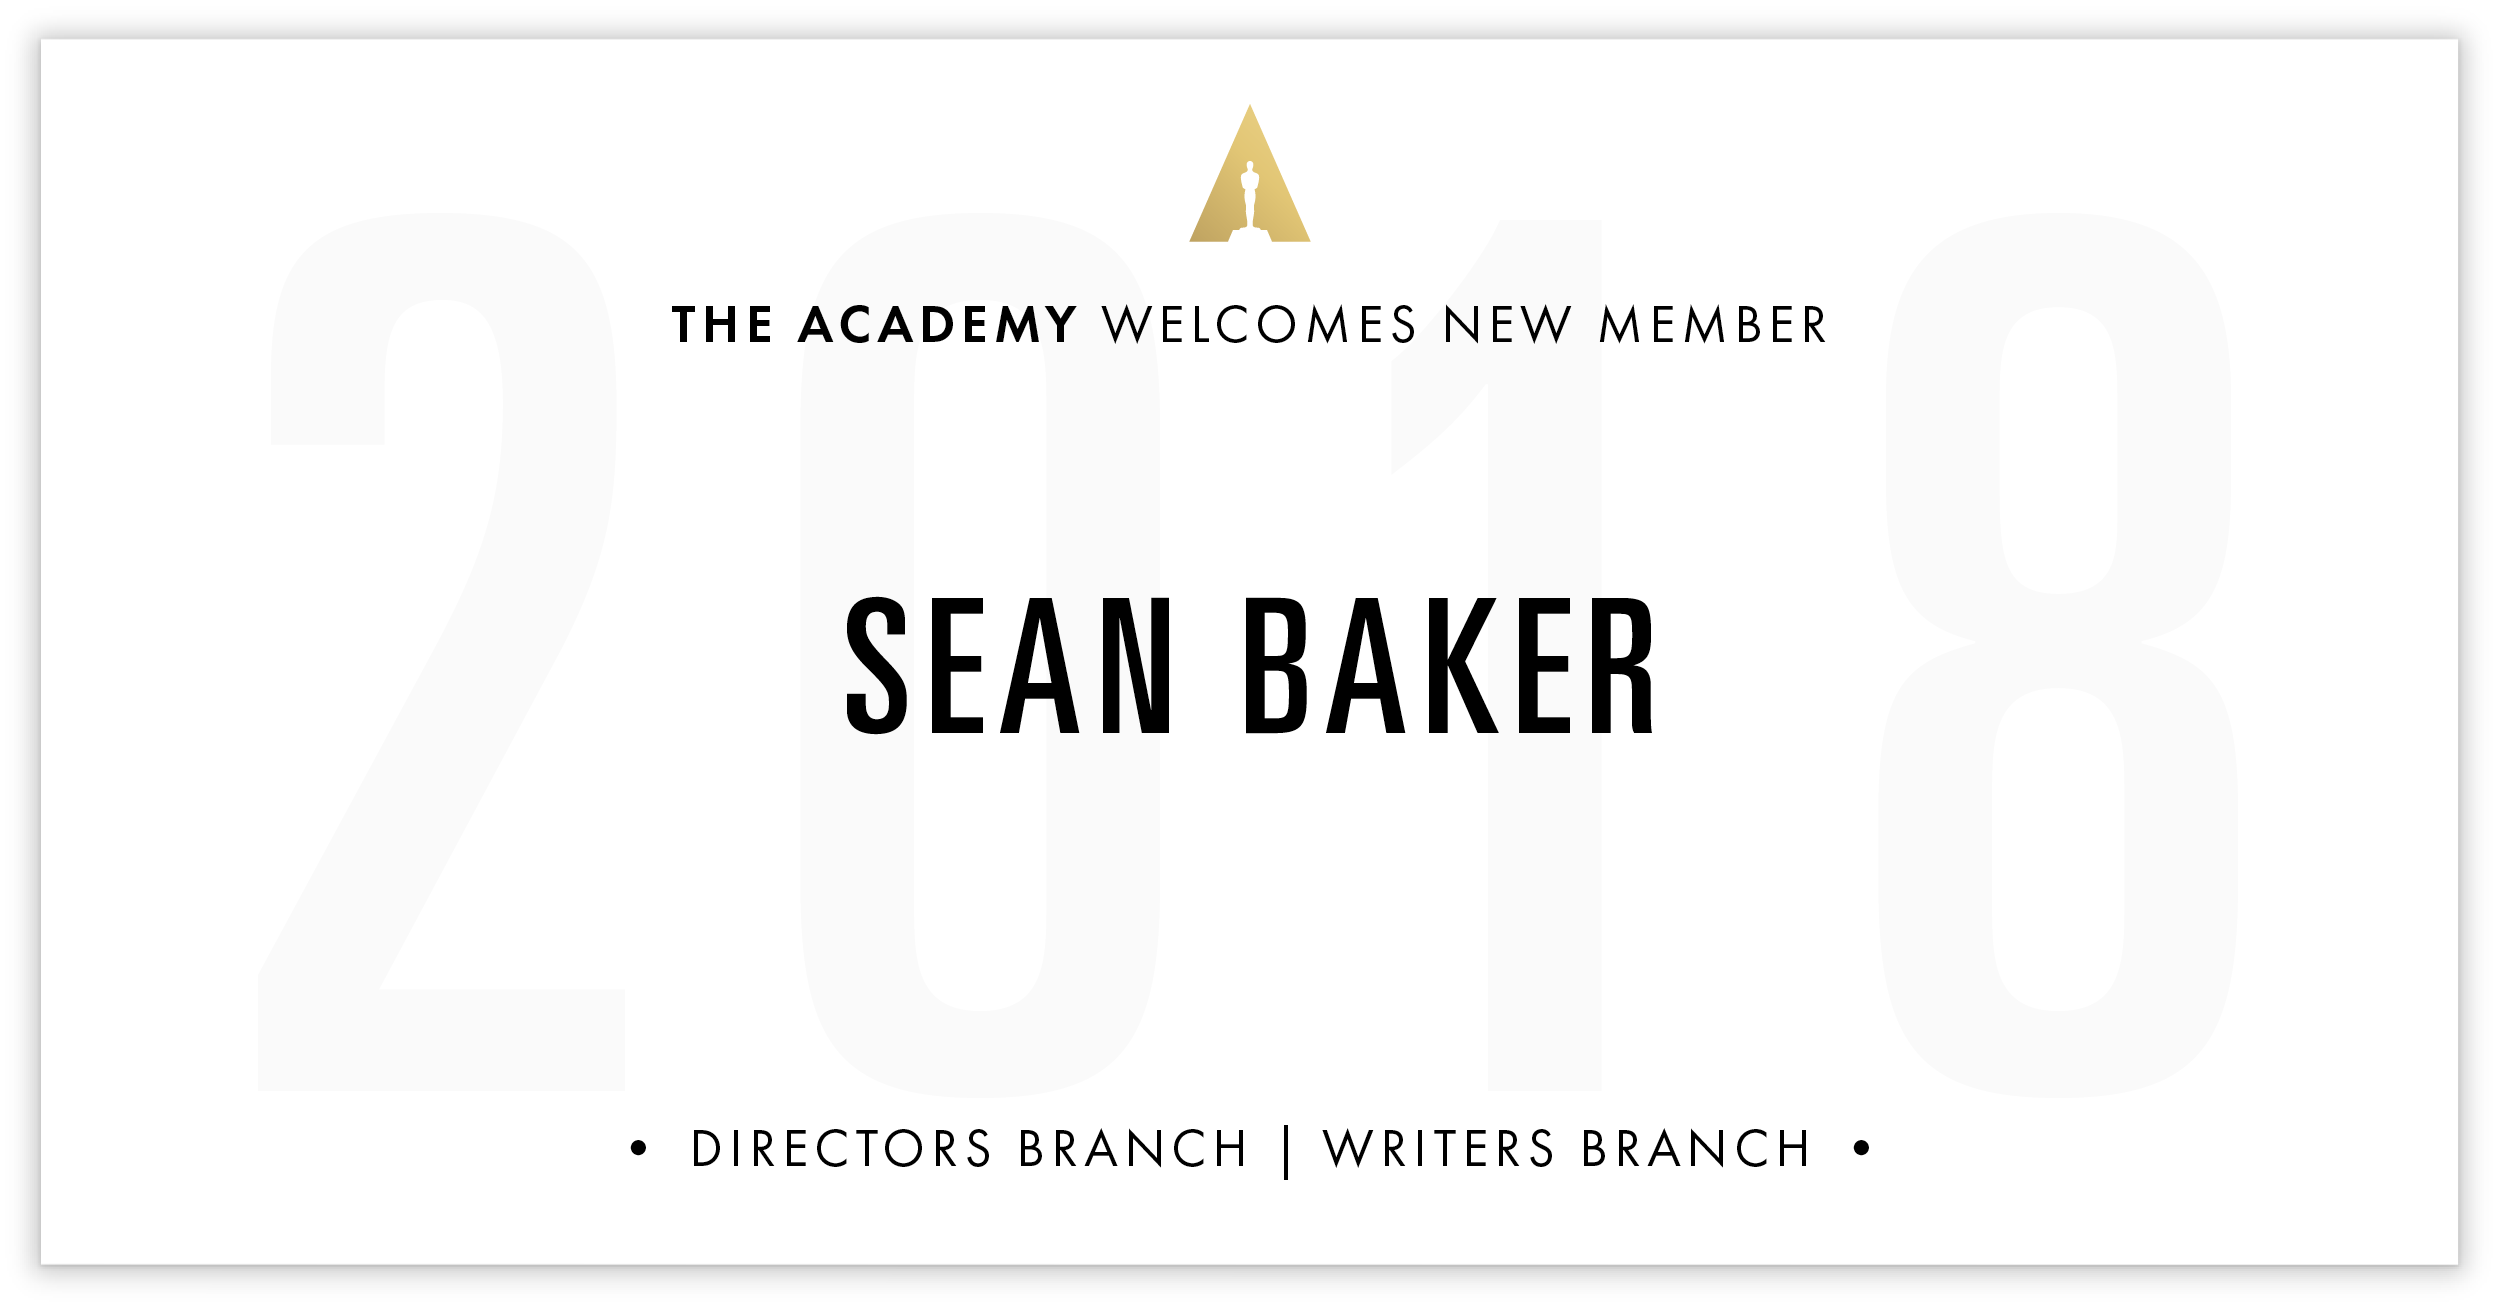 Sean Baker is invited!